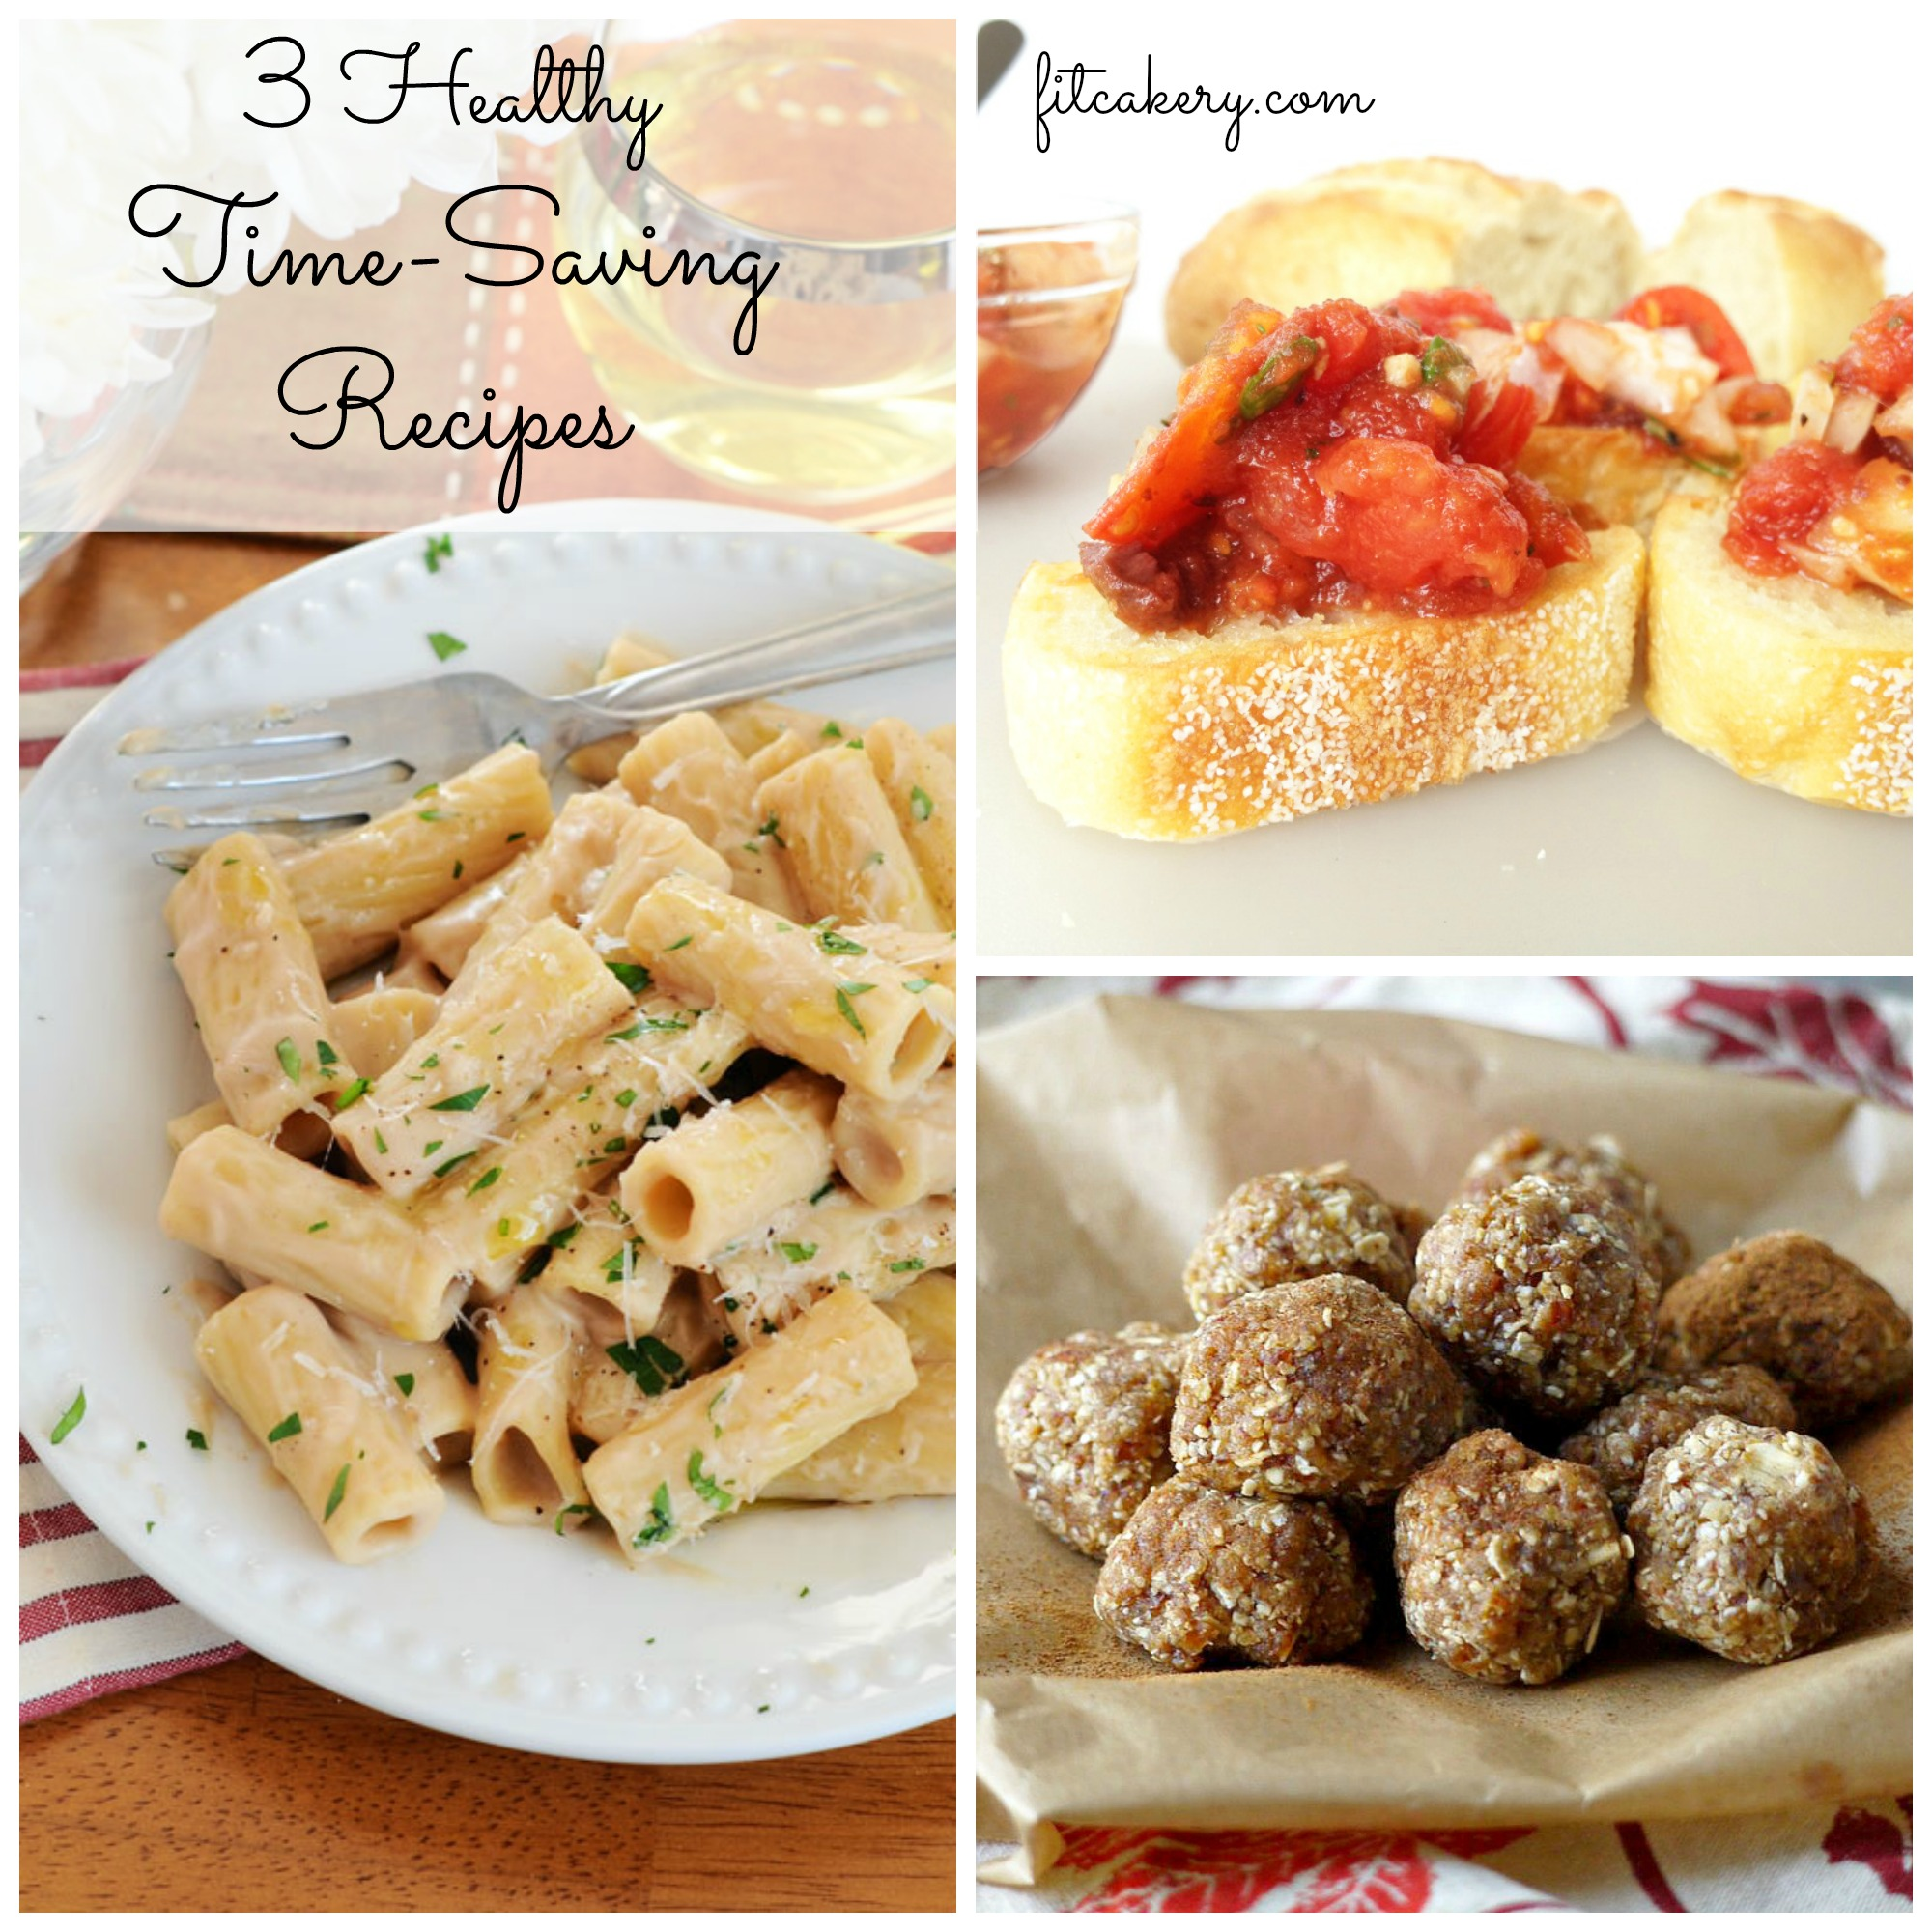 Three healthy and delicious recipes I'll be making for easy + quick gourmet dinners in! #easyrecipes #healthyrecipes